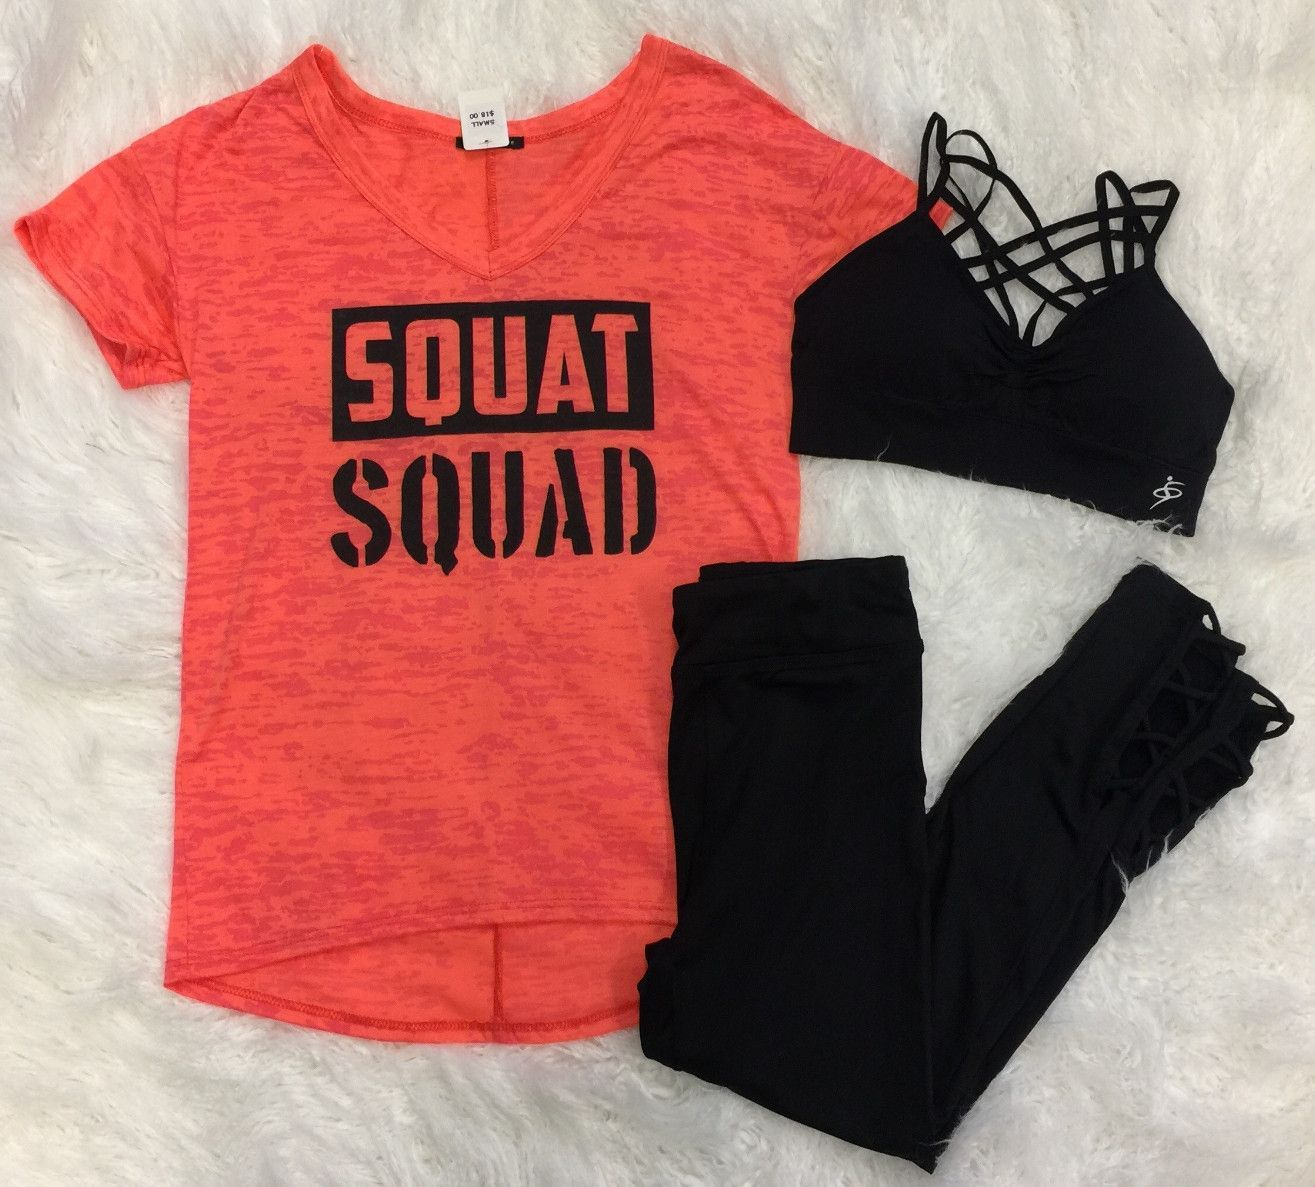 Squat Squad Top: Neon from privityboutique